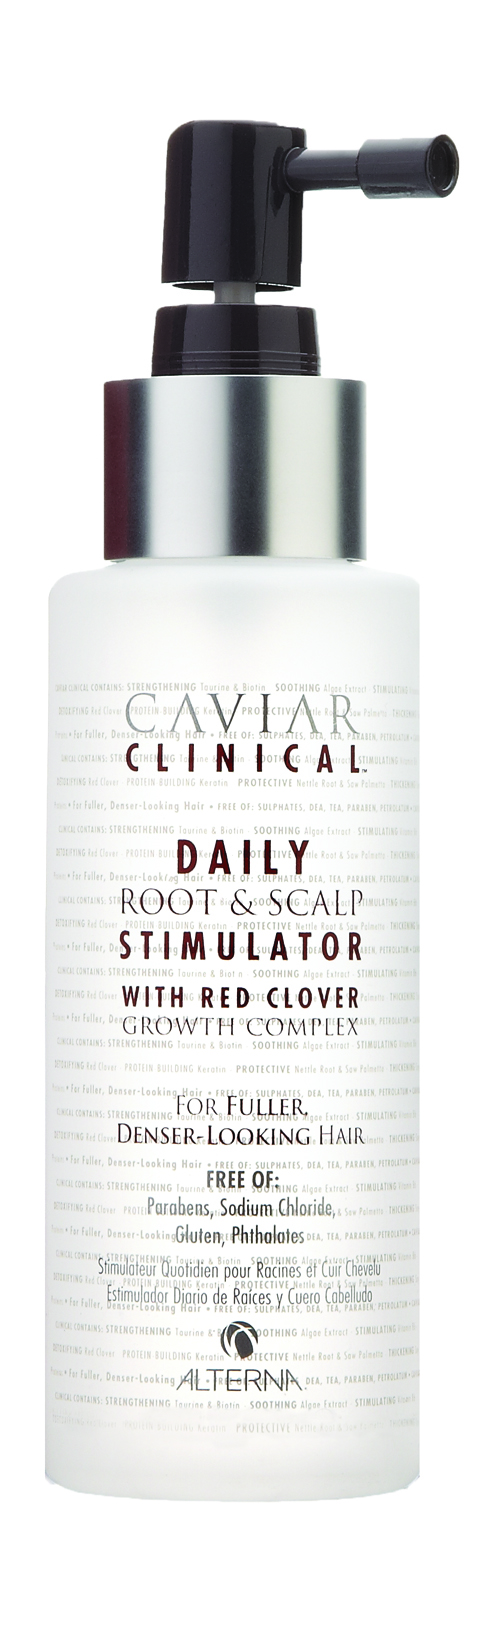 ALTERNA Спрей-активатор для роста волос / Clinical Daily Root & Scalp Stimulator CAVIAR 100 мл alterna спрей активатор для роста волос caviar clinical daily root and scalp stimulator 100 мл